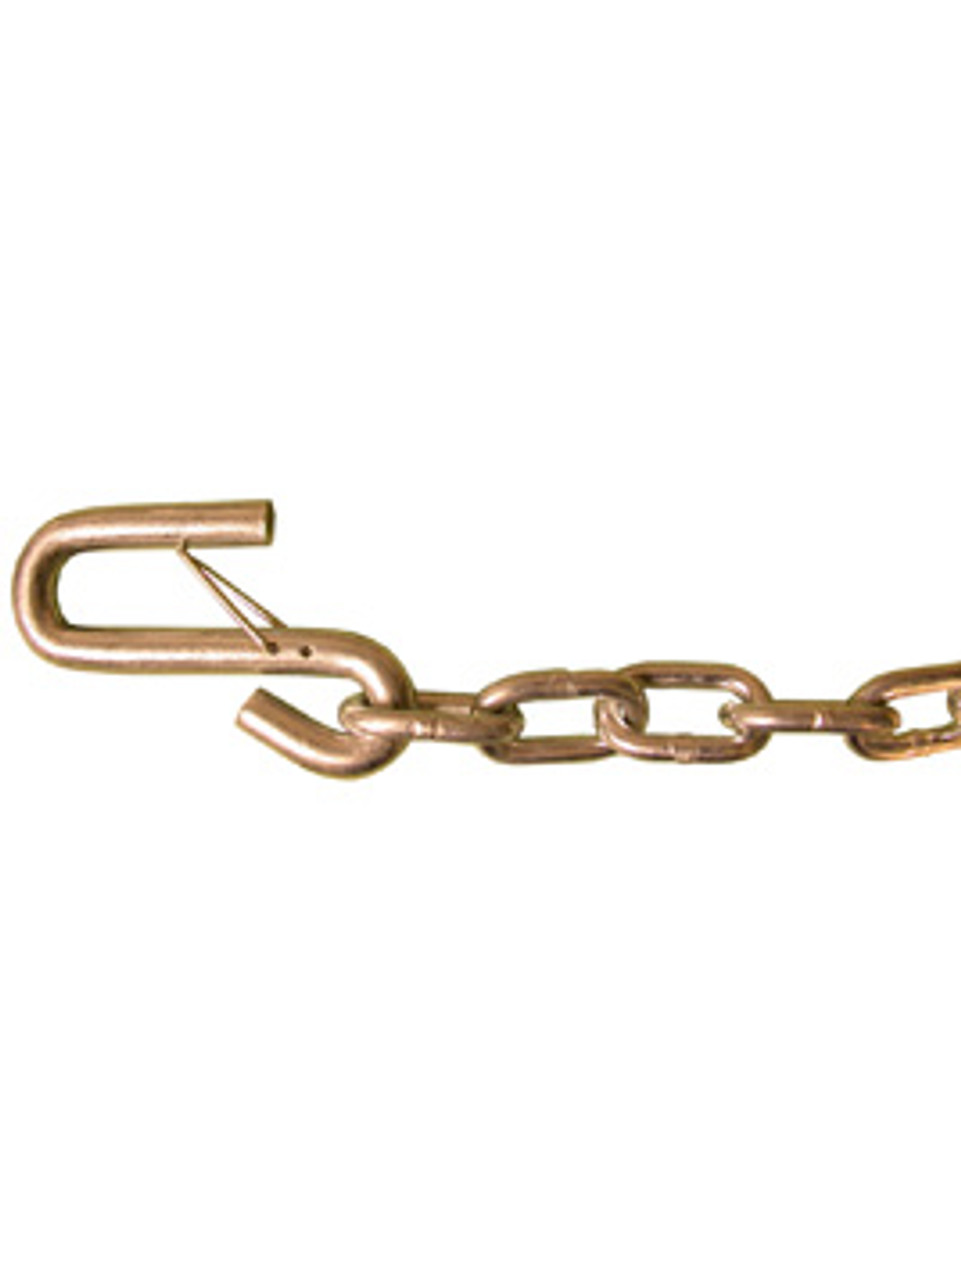 "PSC27716 --- 1/4"" Proof Coil Safety Chain - 27"" Length"